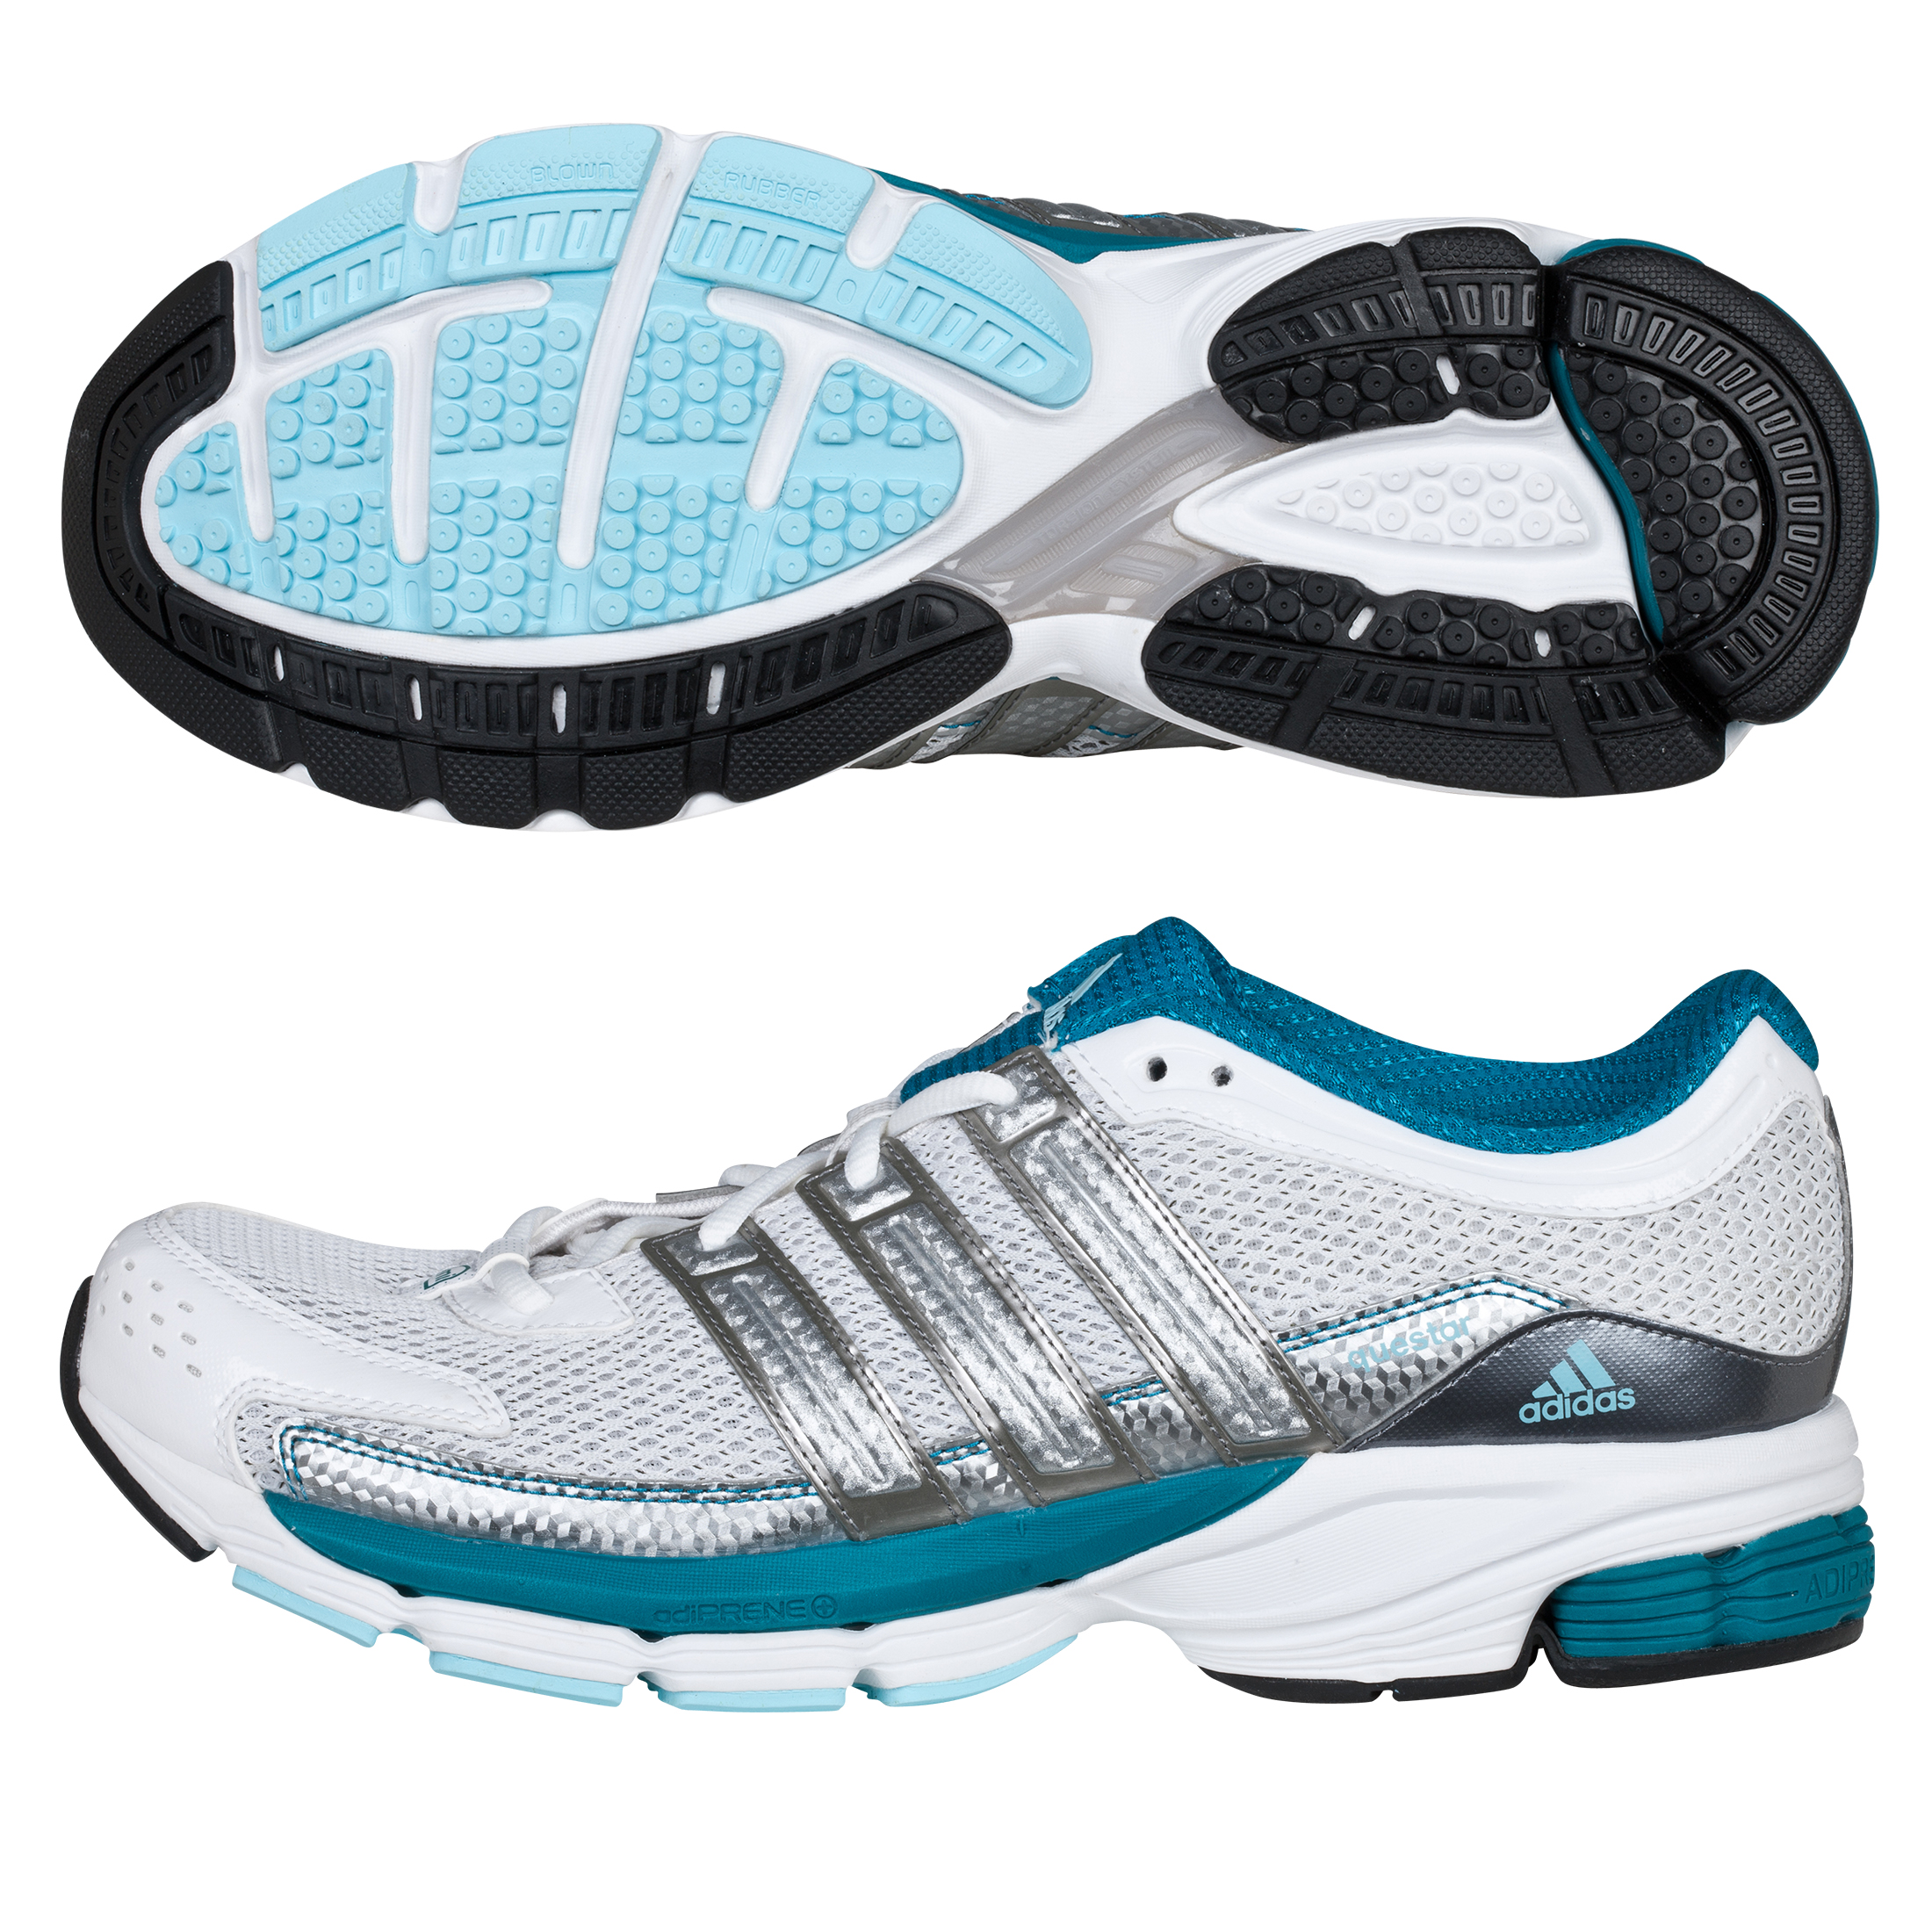 Adidas Questar Cushion Trainer - Womens